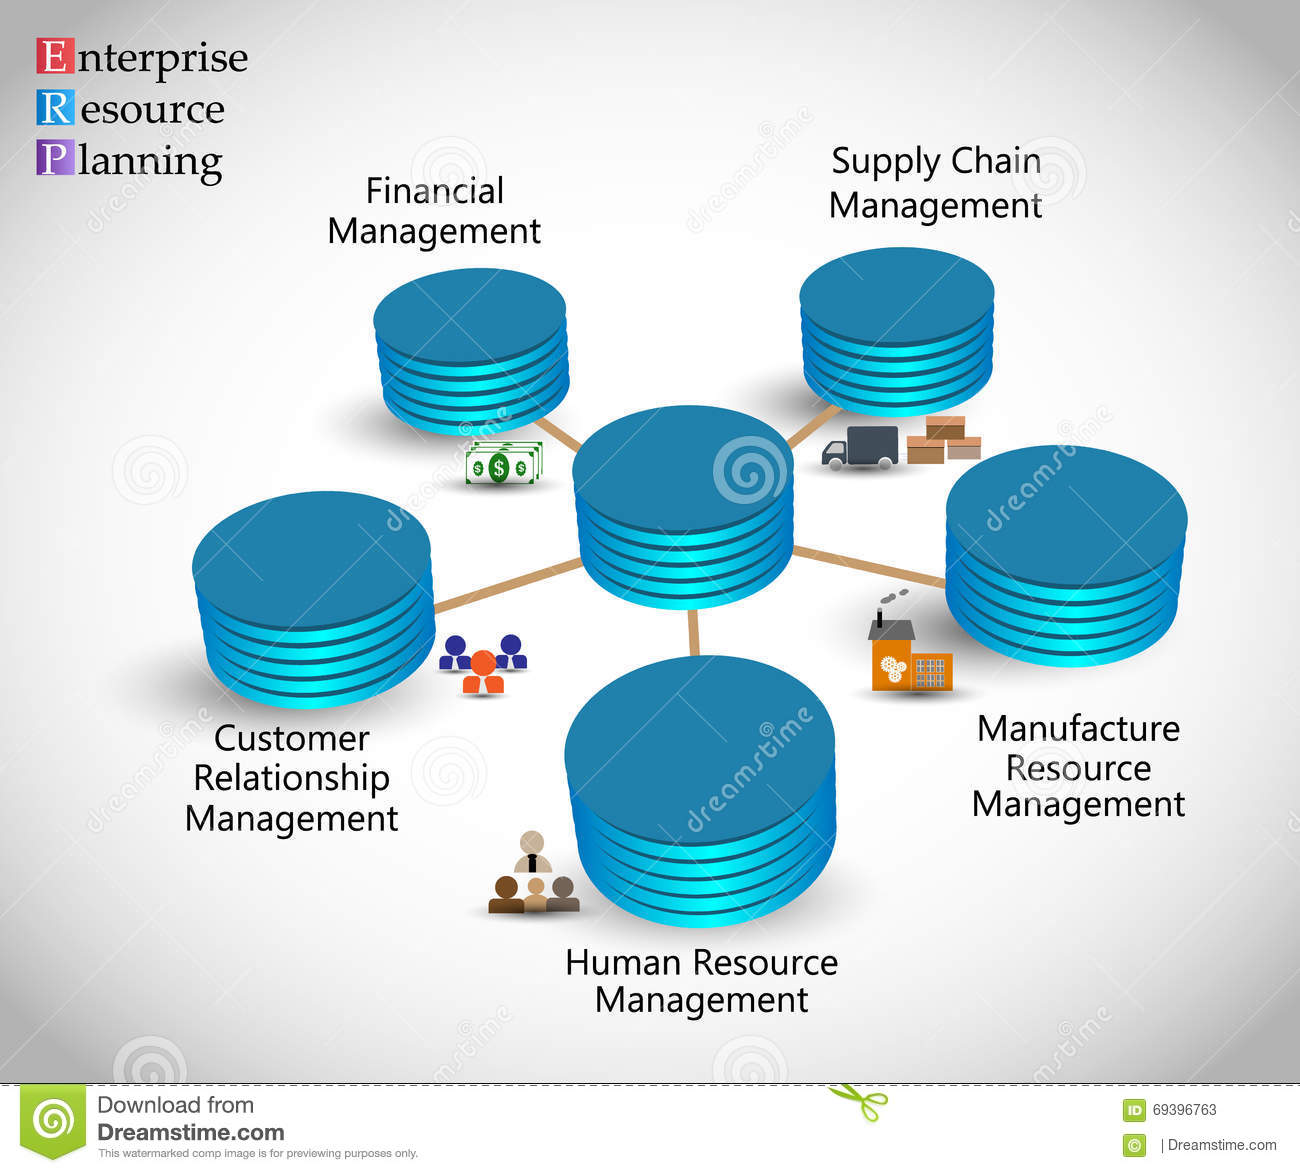 Concept of Enterprise Resource Planning & ERP lifecycle